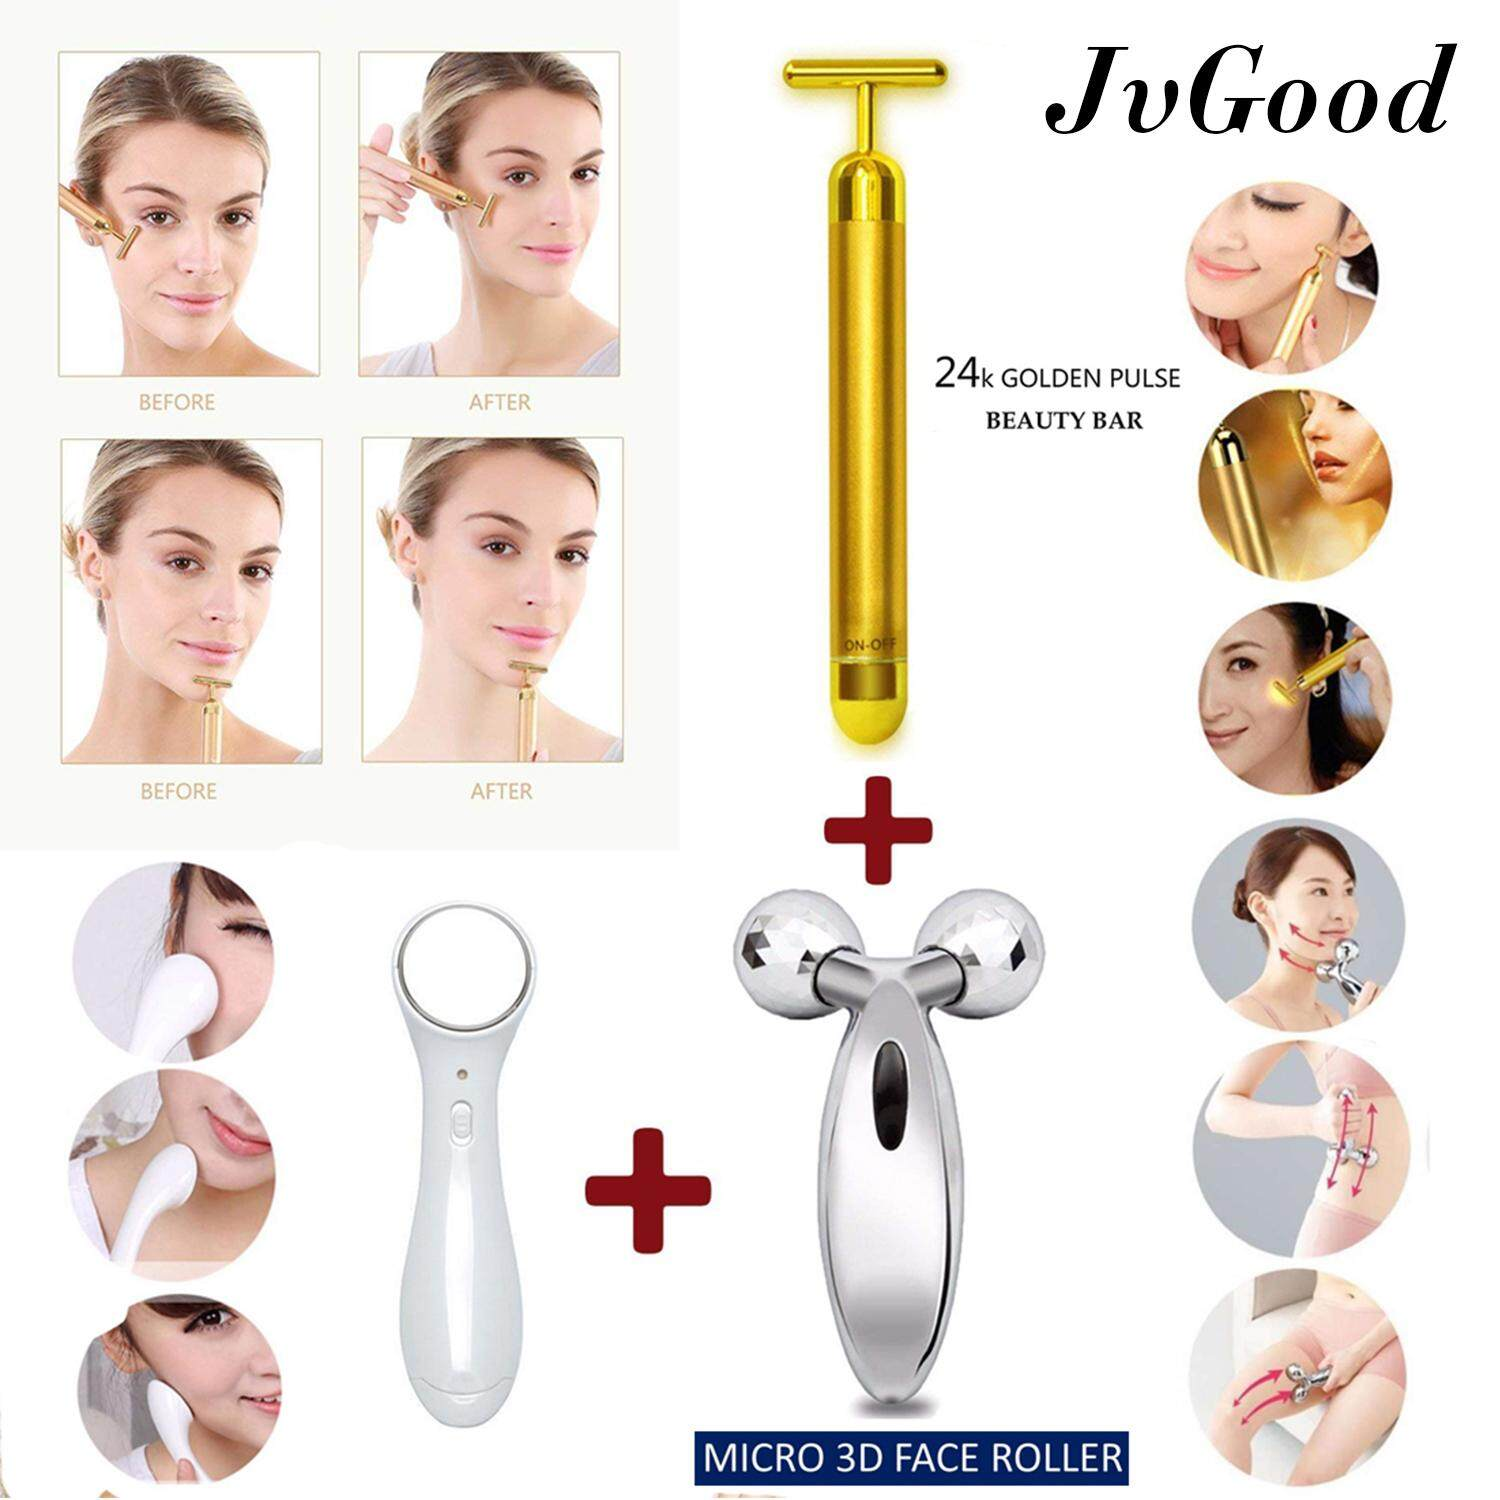 JvGood เครื่องนวดหน้าระบบไอออนนิค ขนาดพกพา Skin Care 3-in-1 Kit Face Lifting Slimming Face Massager Roller Face Roller Whitening Face Double Chin 3D Face Massager